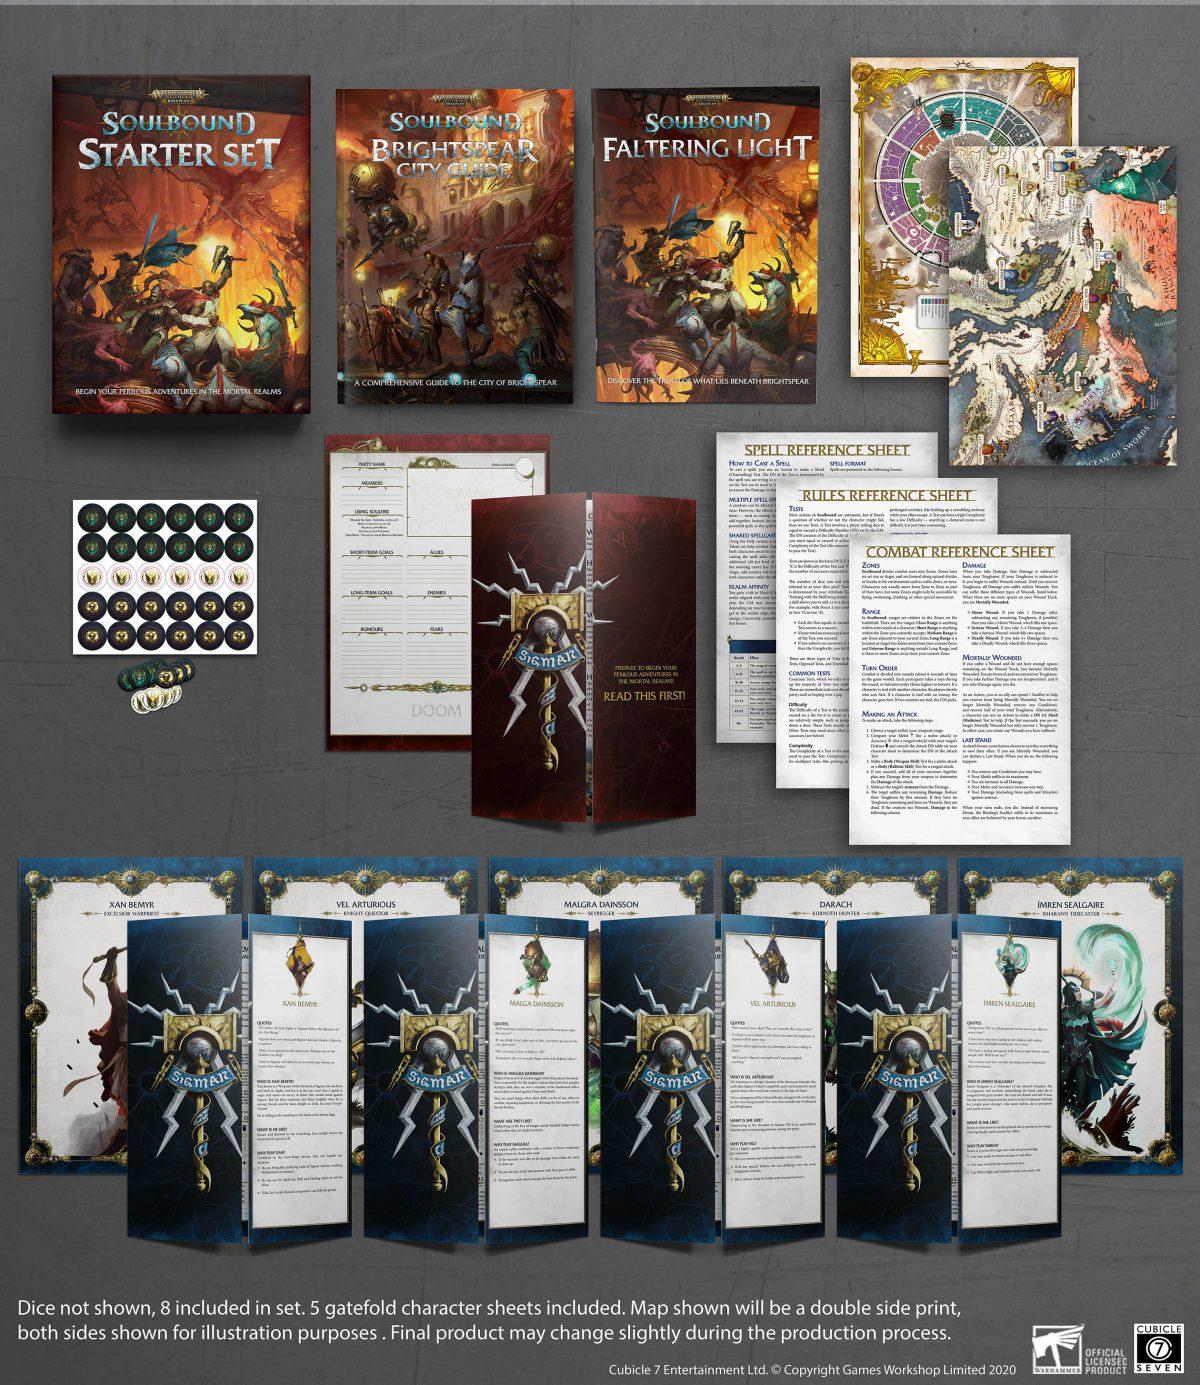 AoS: Soulbound Starter Set – What's in the box?